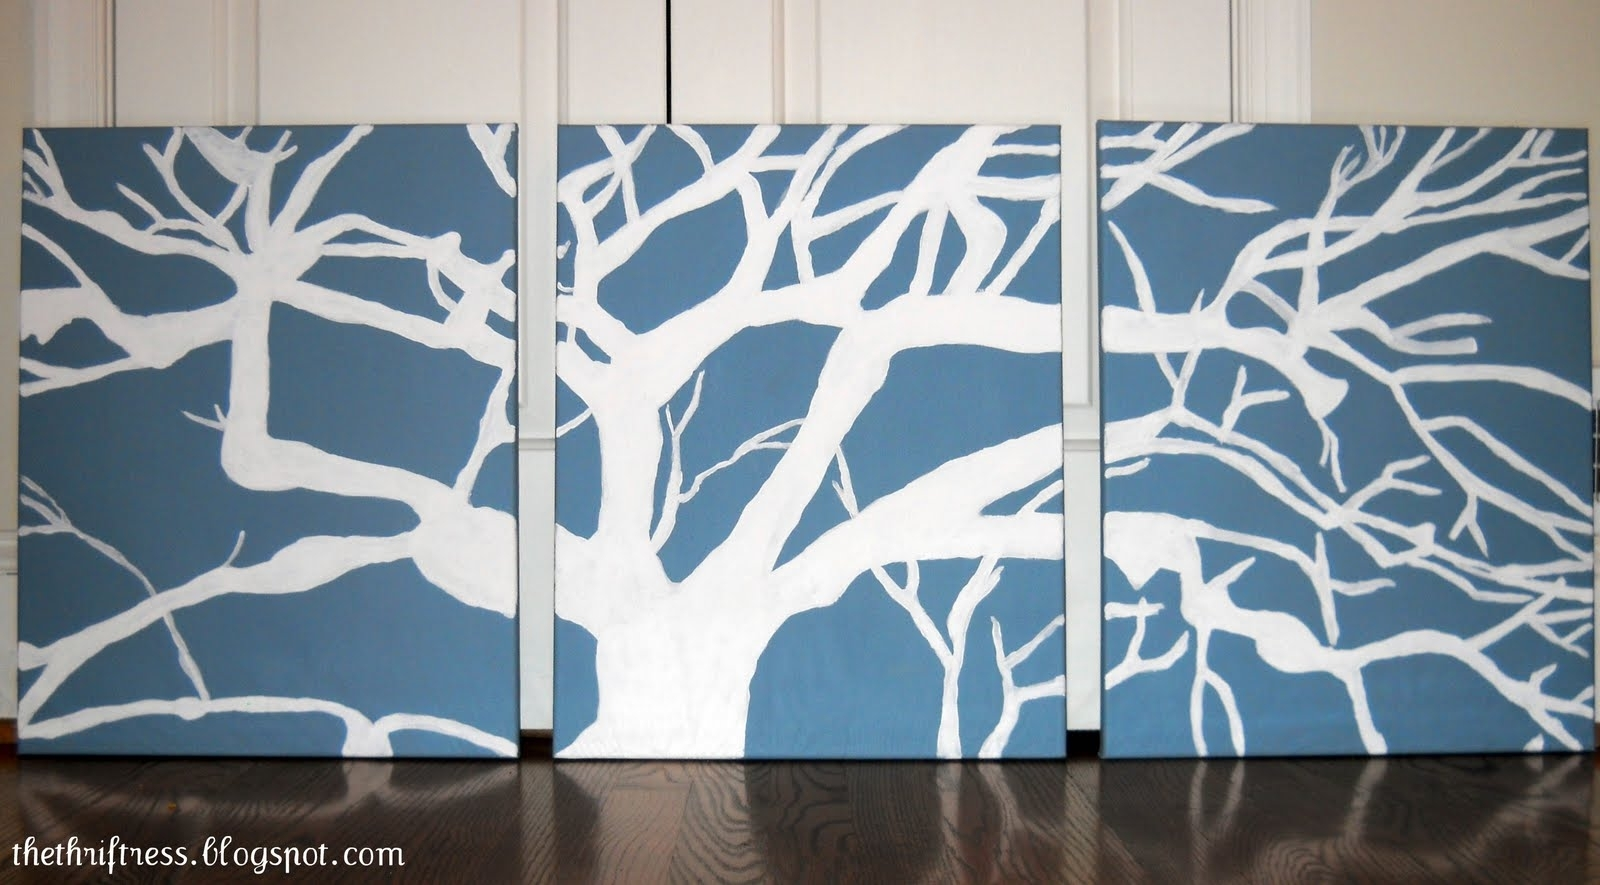 Diy Wall Art Stencils Paint Fabric – Dma Homes | #37854 For Most Recently Released Fabric Panels For Wall Art (View 12 of 15)